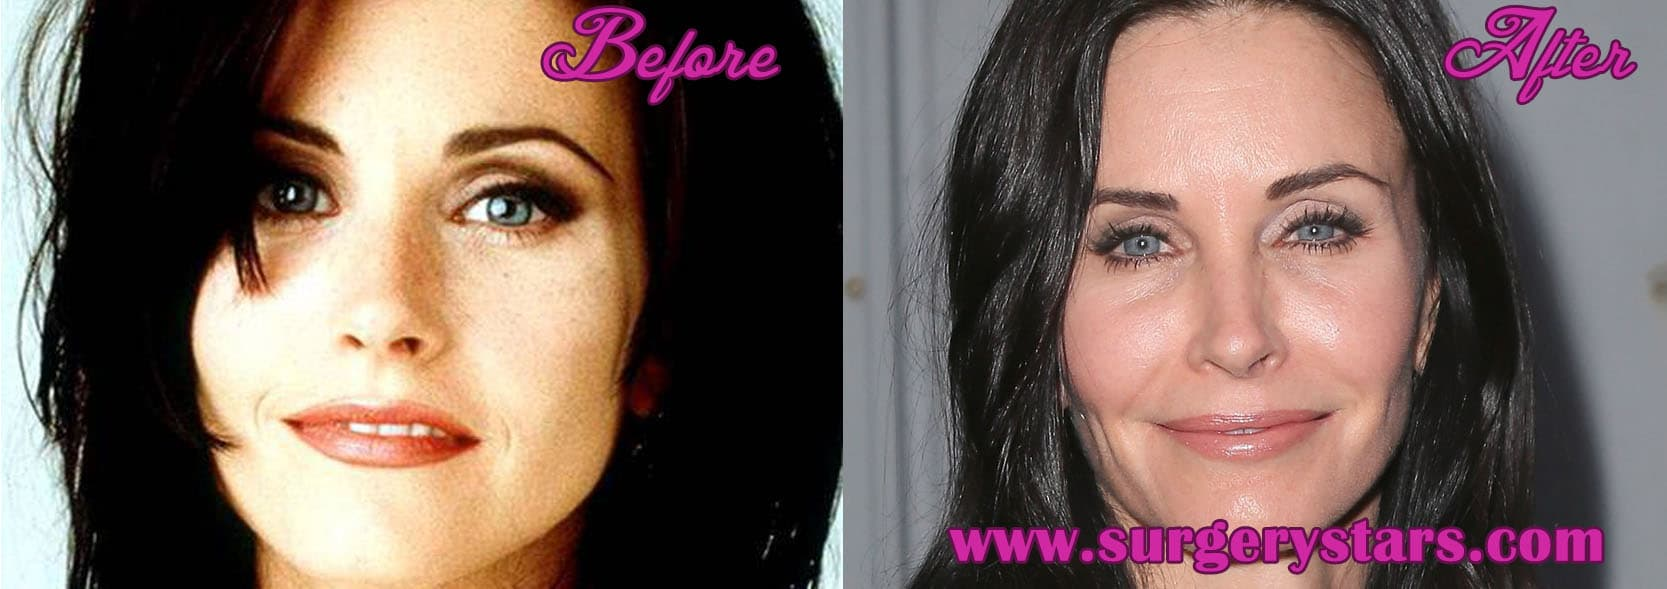 Courtney Cox Before Plastic Surgery And After photo - 1